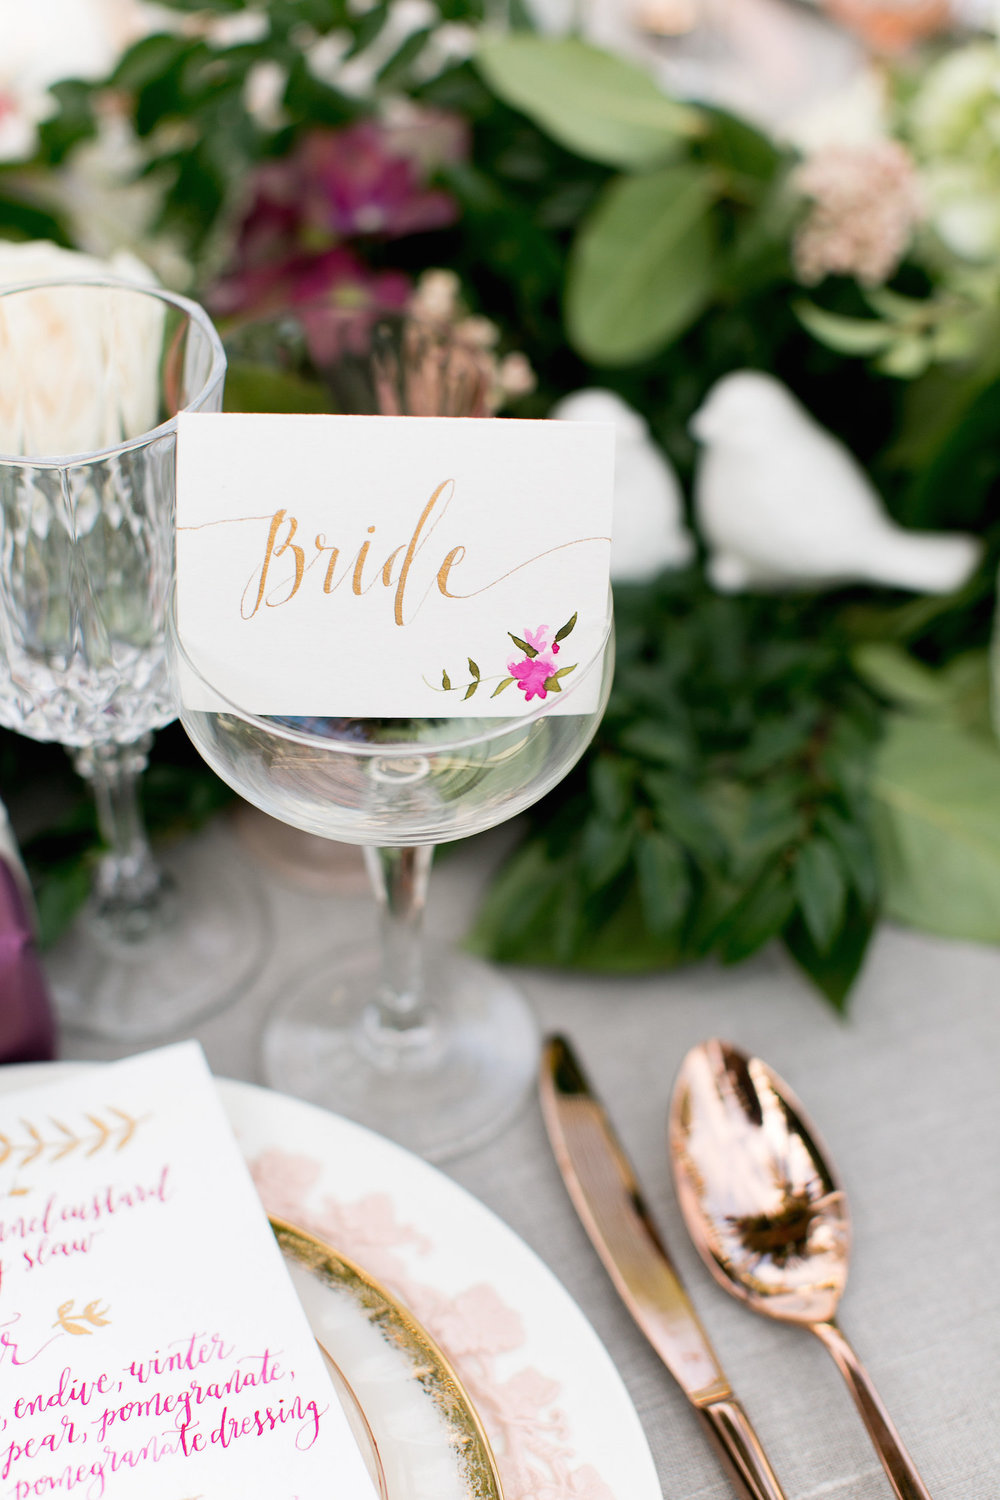 Wedding details by San Diego planner, Sweet Blossom Weddings.